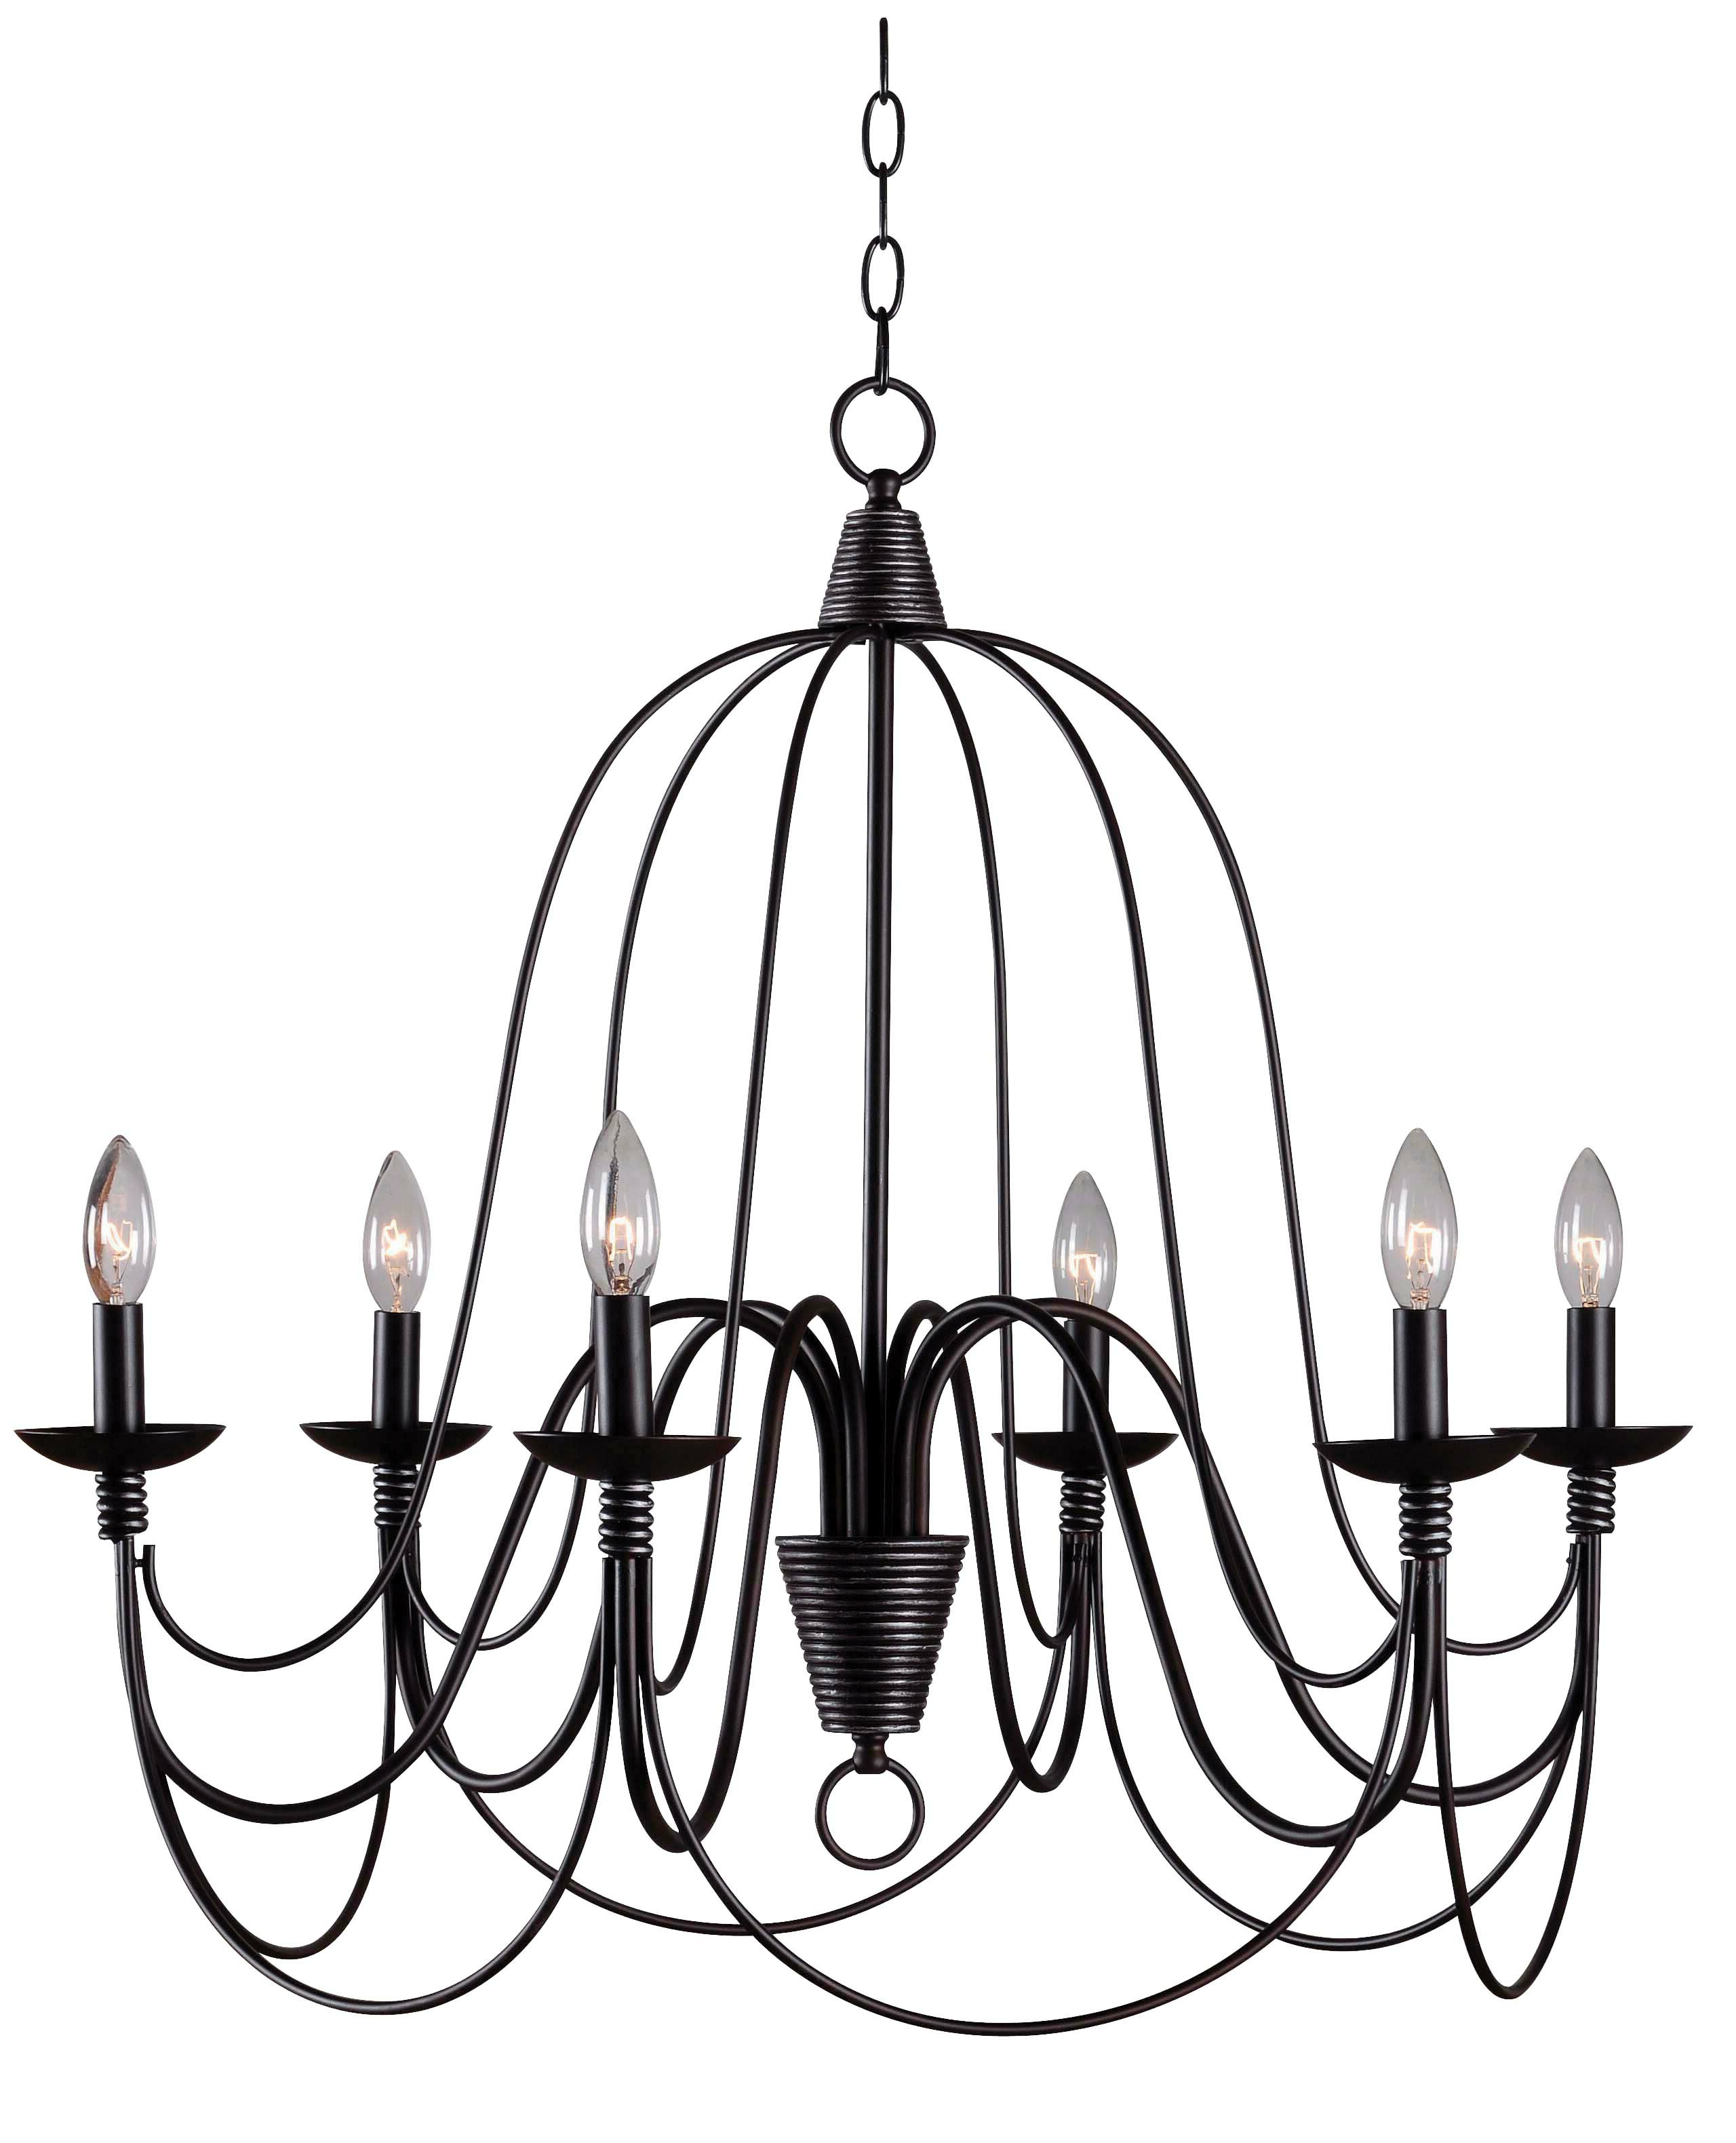 Kollman 6 Light Candle Style Chandelier In Well Known Camilla 9 Light Candle Style Chandeliers (View 13 of 20)